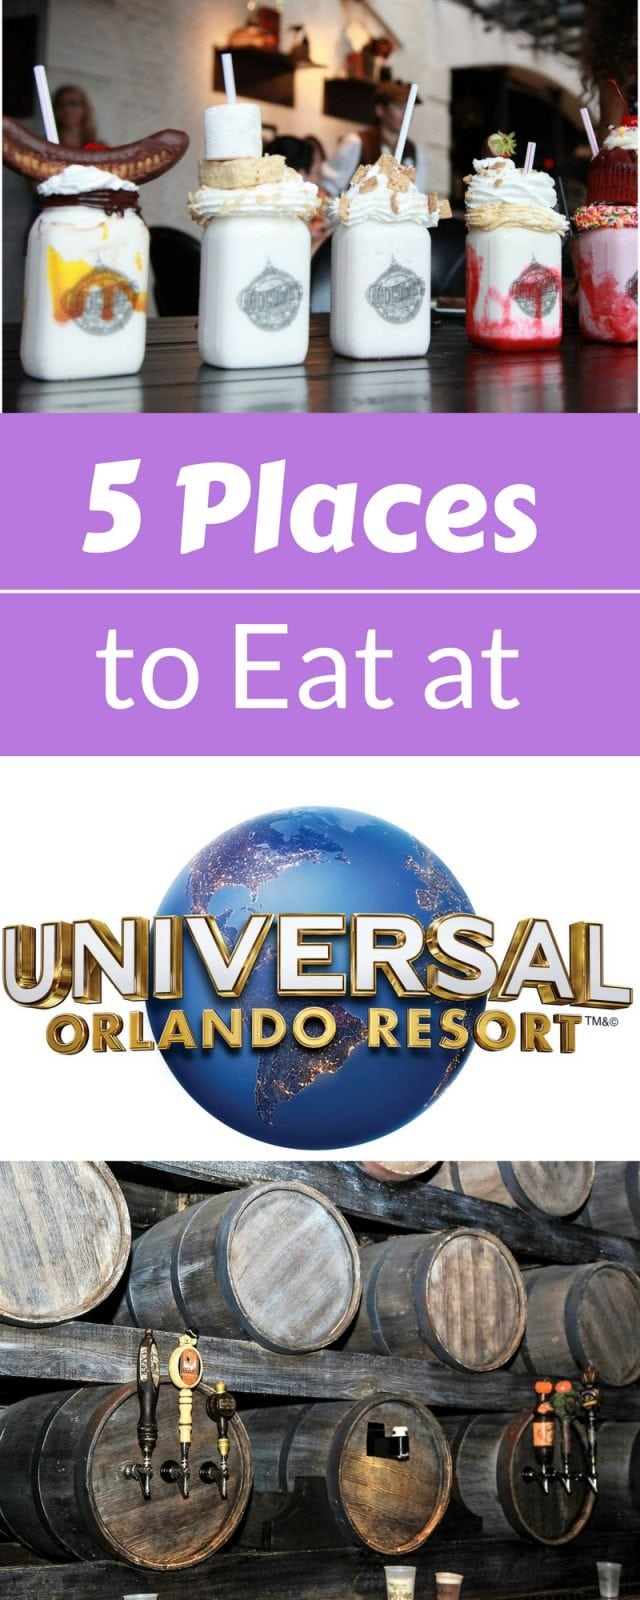 These are 5 places you are gonna wanna eat at at Unviersal Orlando Florida. Great mix of options for each budget | FaveMom and Origami Foodie